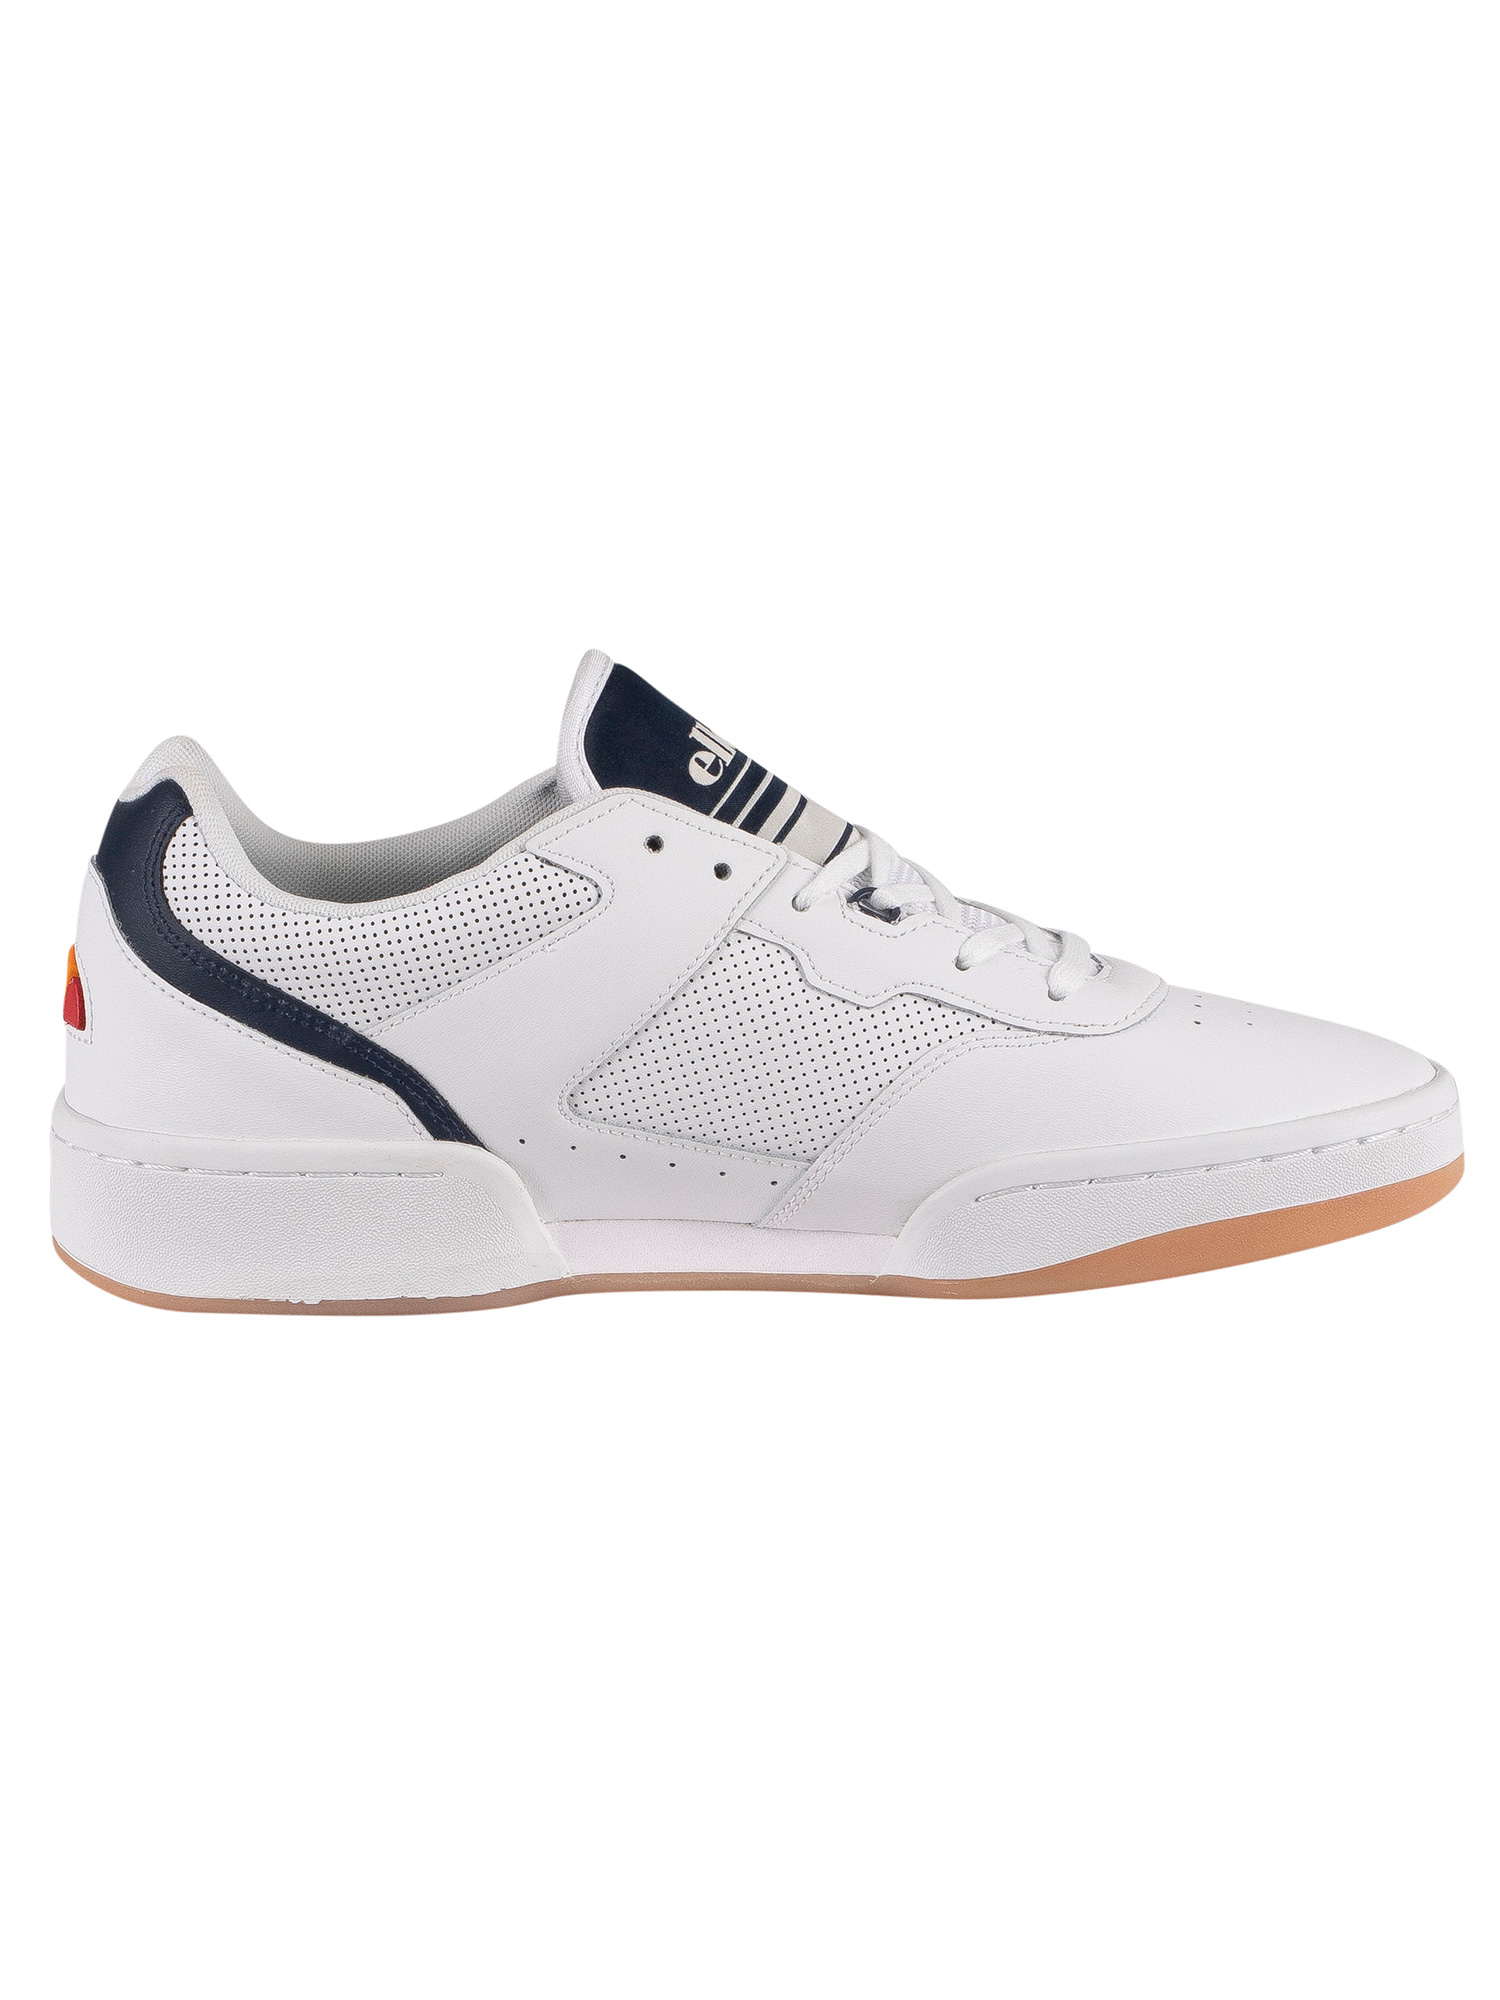 Ellesse Piacentino 2.0 Leather Trainers - White/Dark Blue